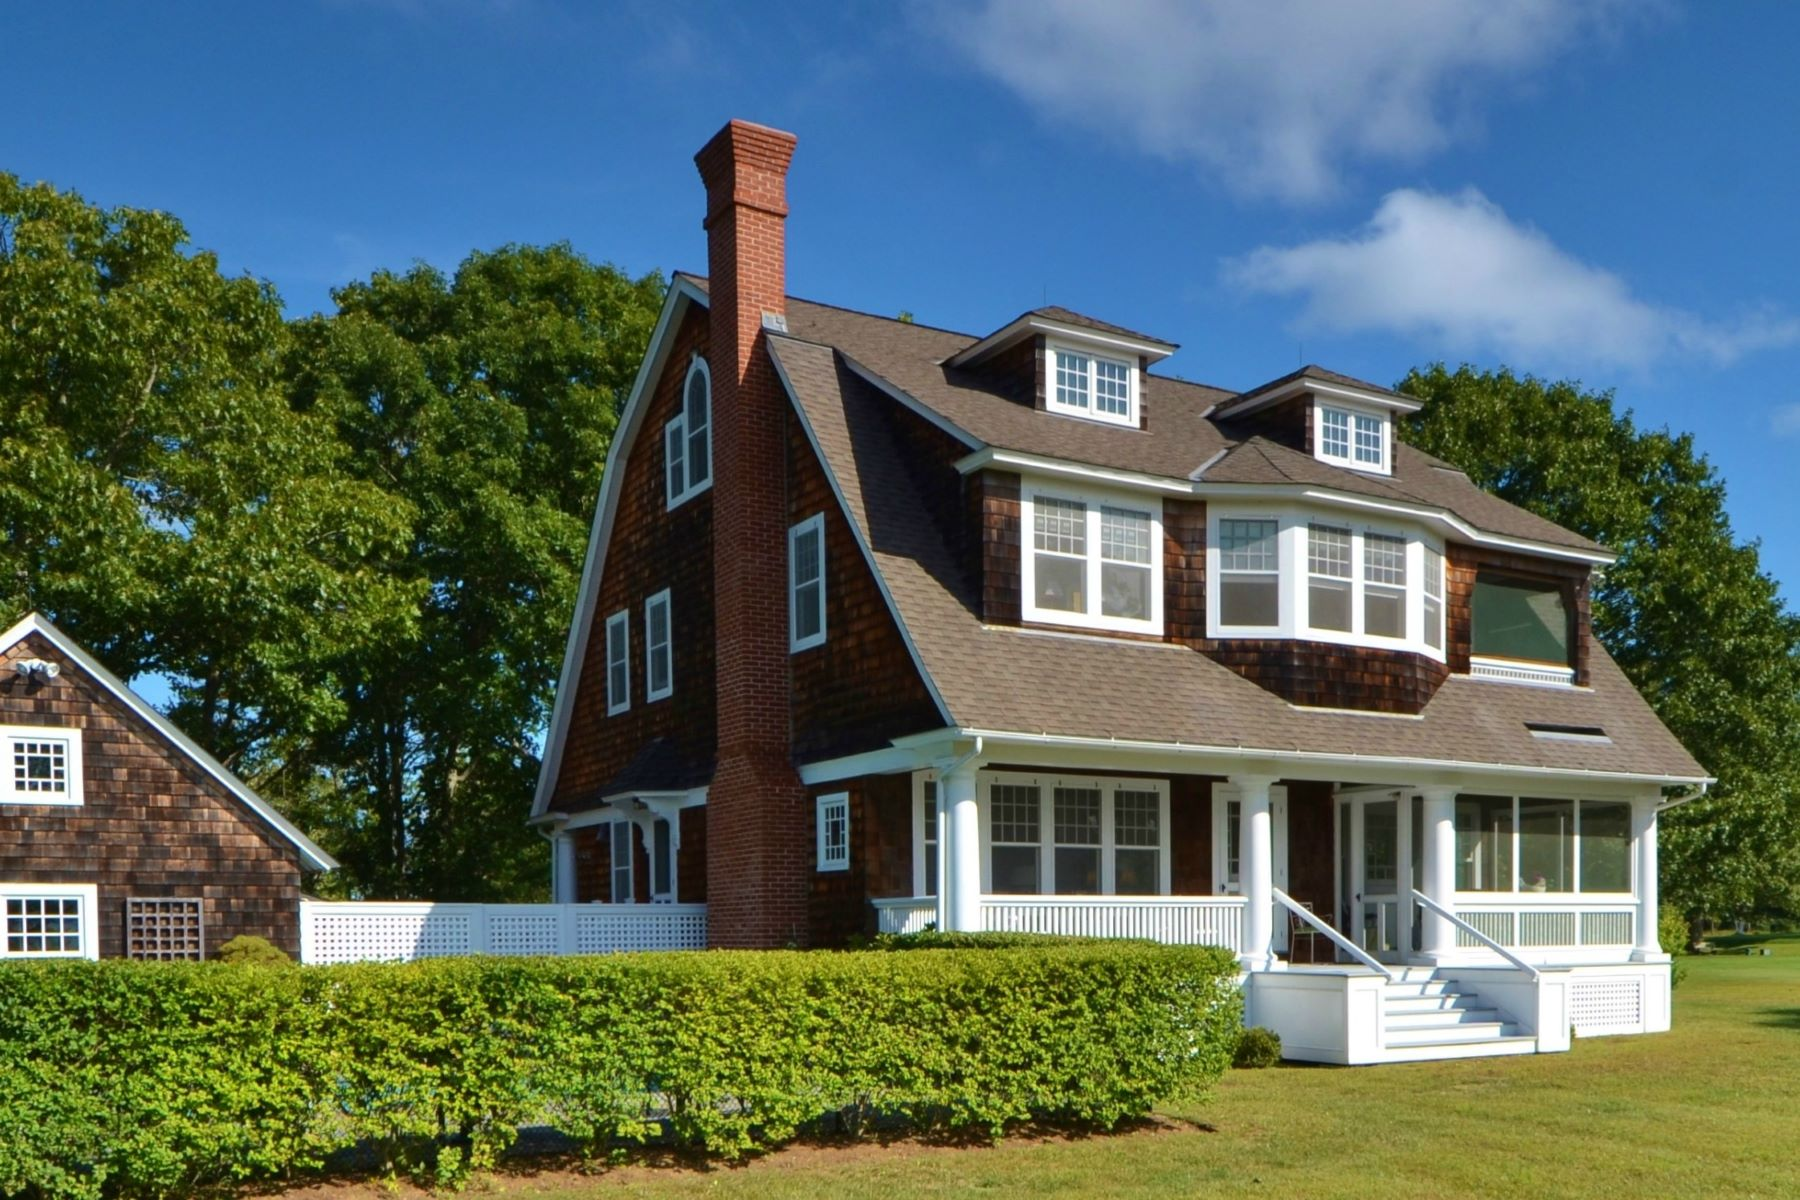 Single Family Homes for Sale at A Fenwick Gem! 549 Maple Avenue Old Saybrook, Connecticut 06475 United States